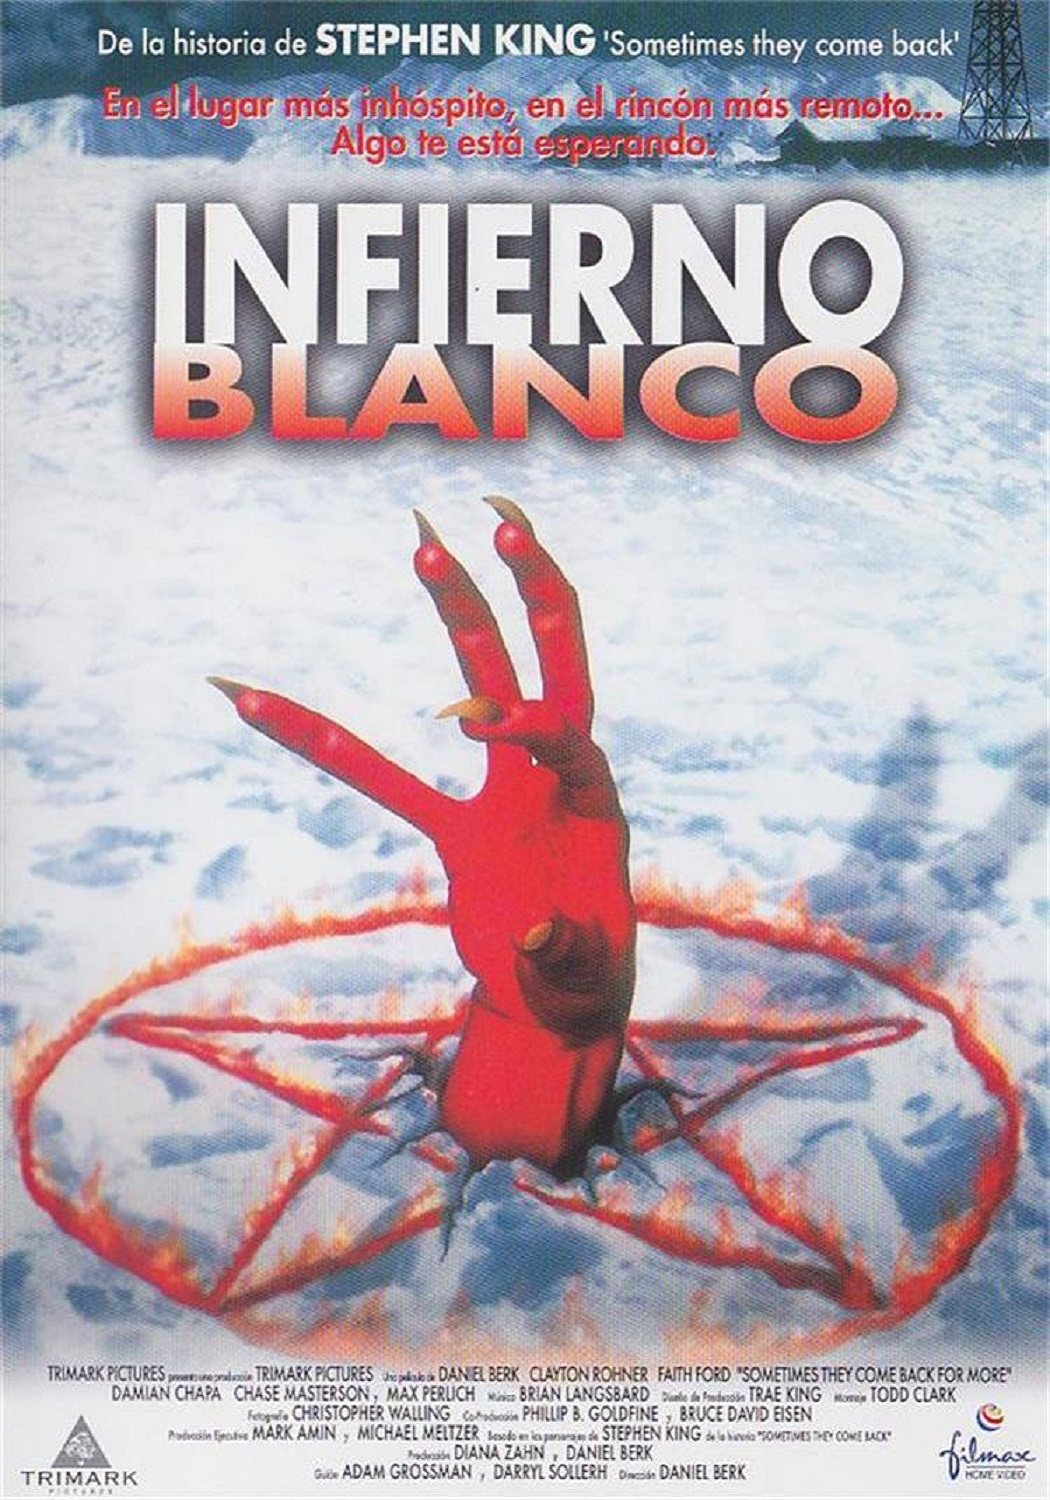 'Infierno blanco'